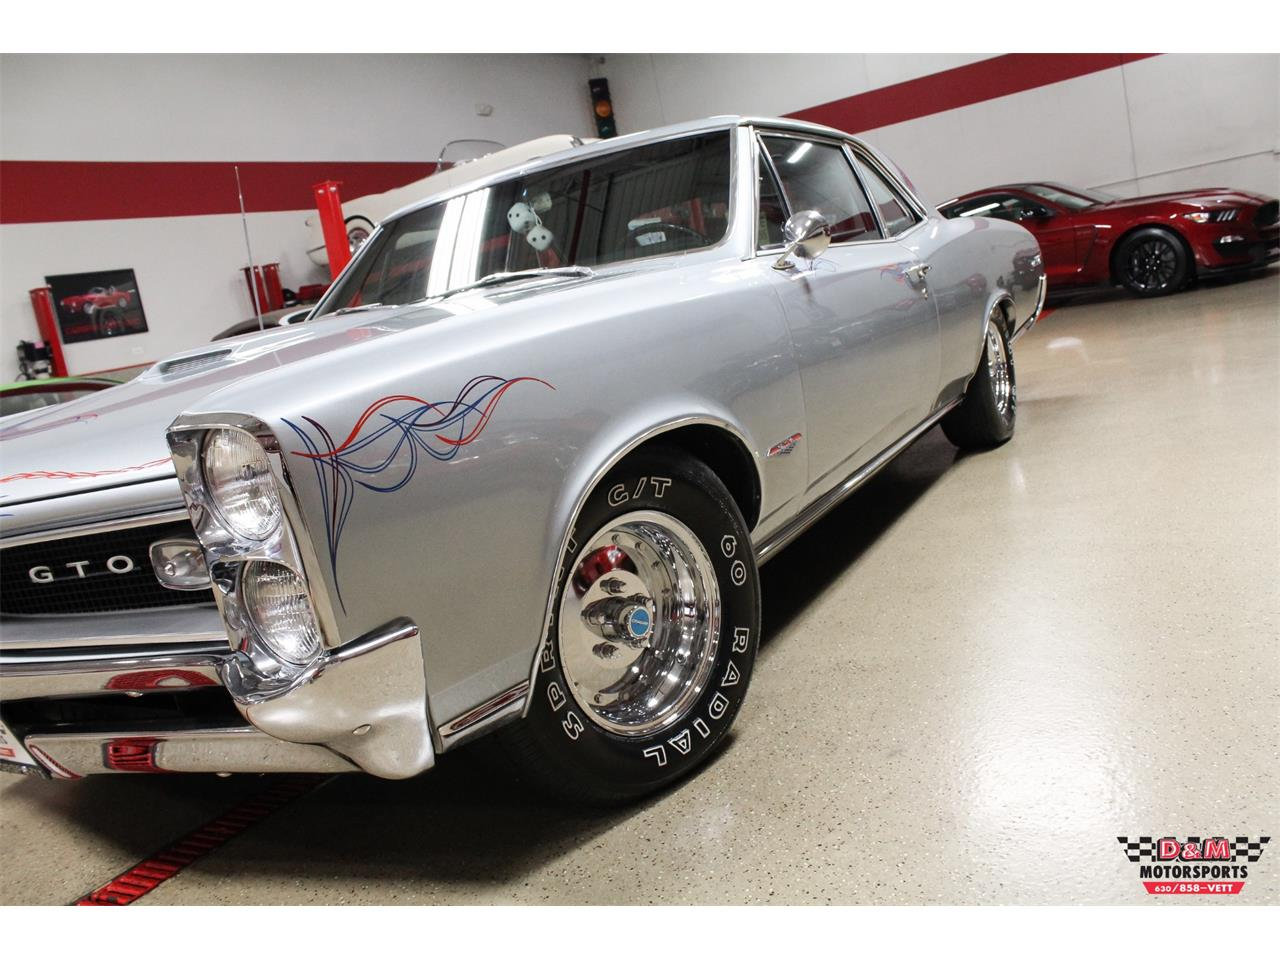 Large Picture of '66 GTO - $39,995.00 Offered by D & M Motorsports - O7FS